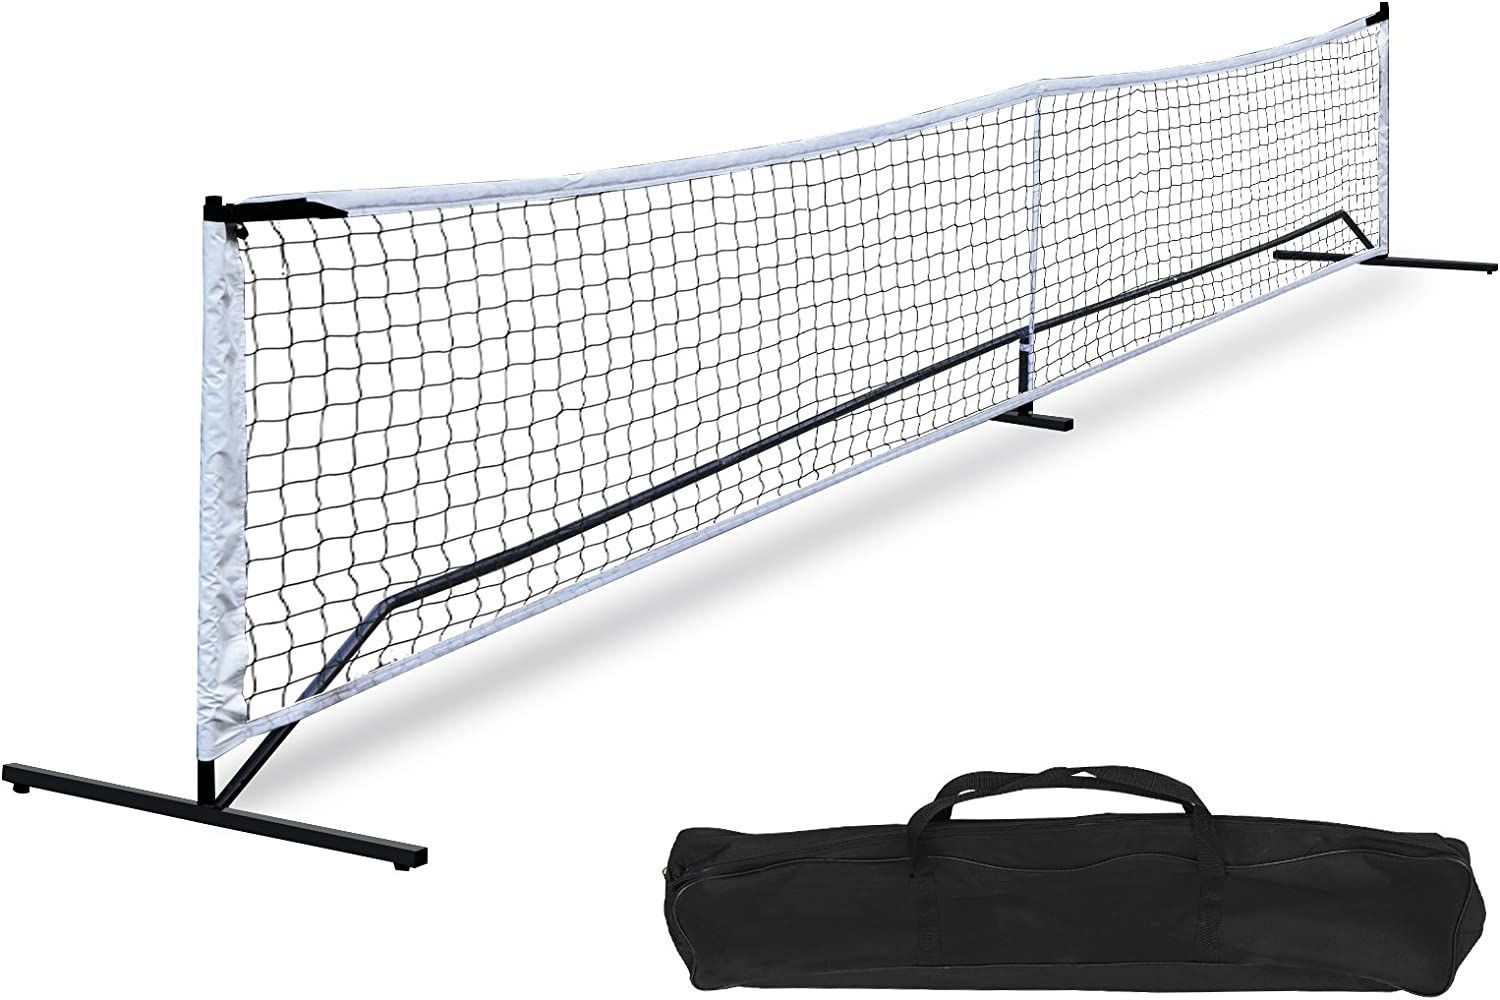 Zeny Portable Pickleball Net Set System With Metal Frame Stand And Regulation Size Net Including Carrying Bag And 4 Ground Stakes Indoor Outdoor Game Arts Crafts Sewing